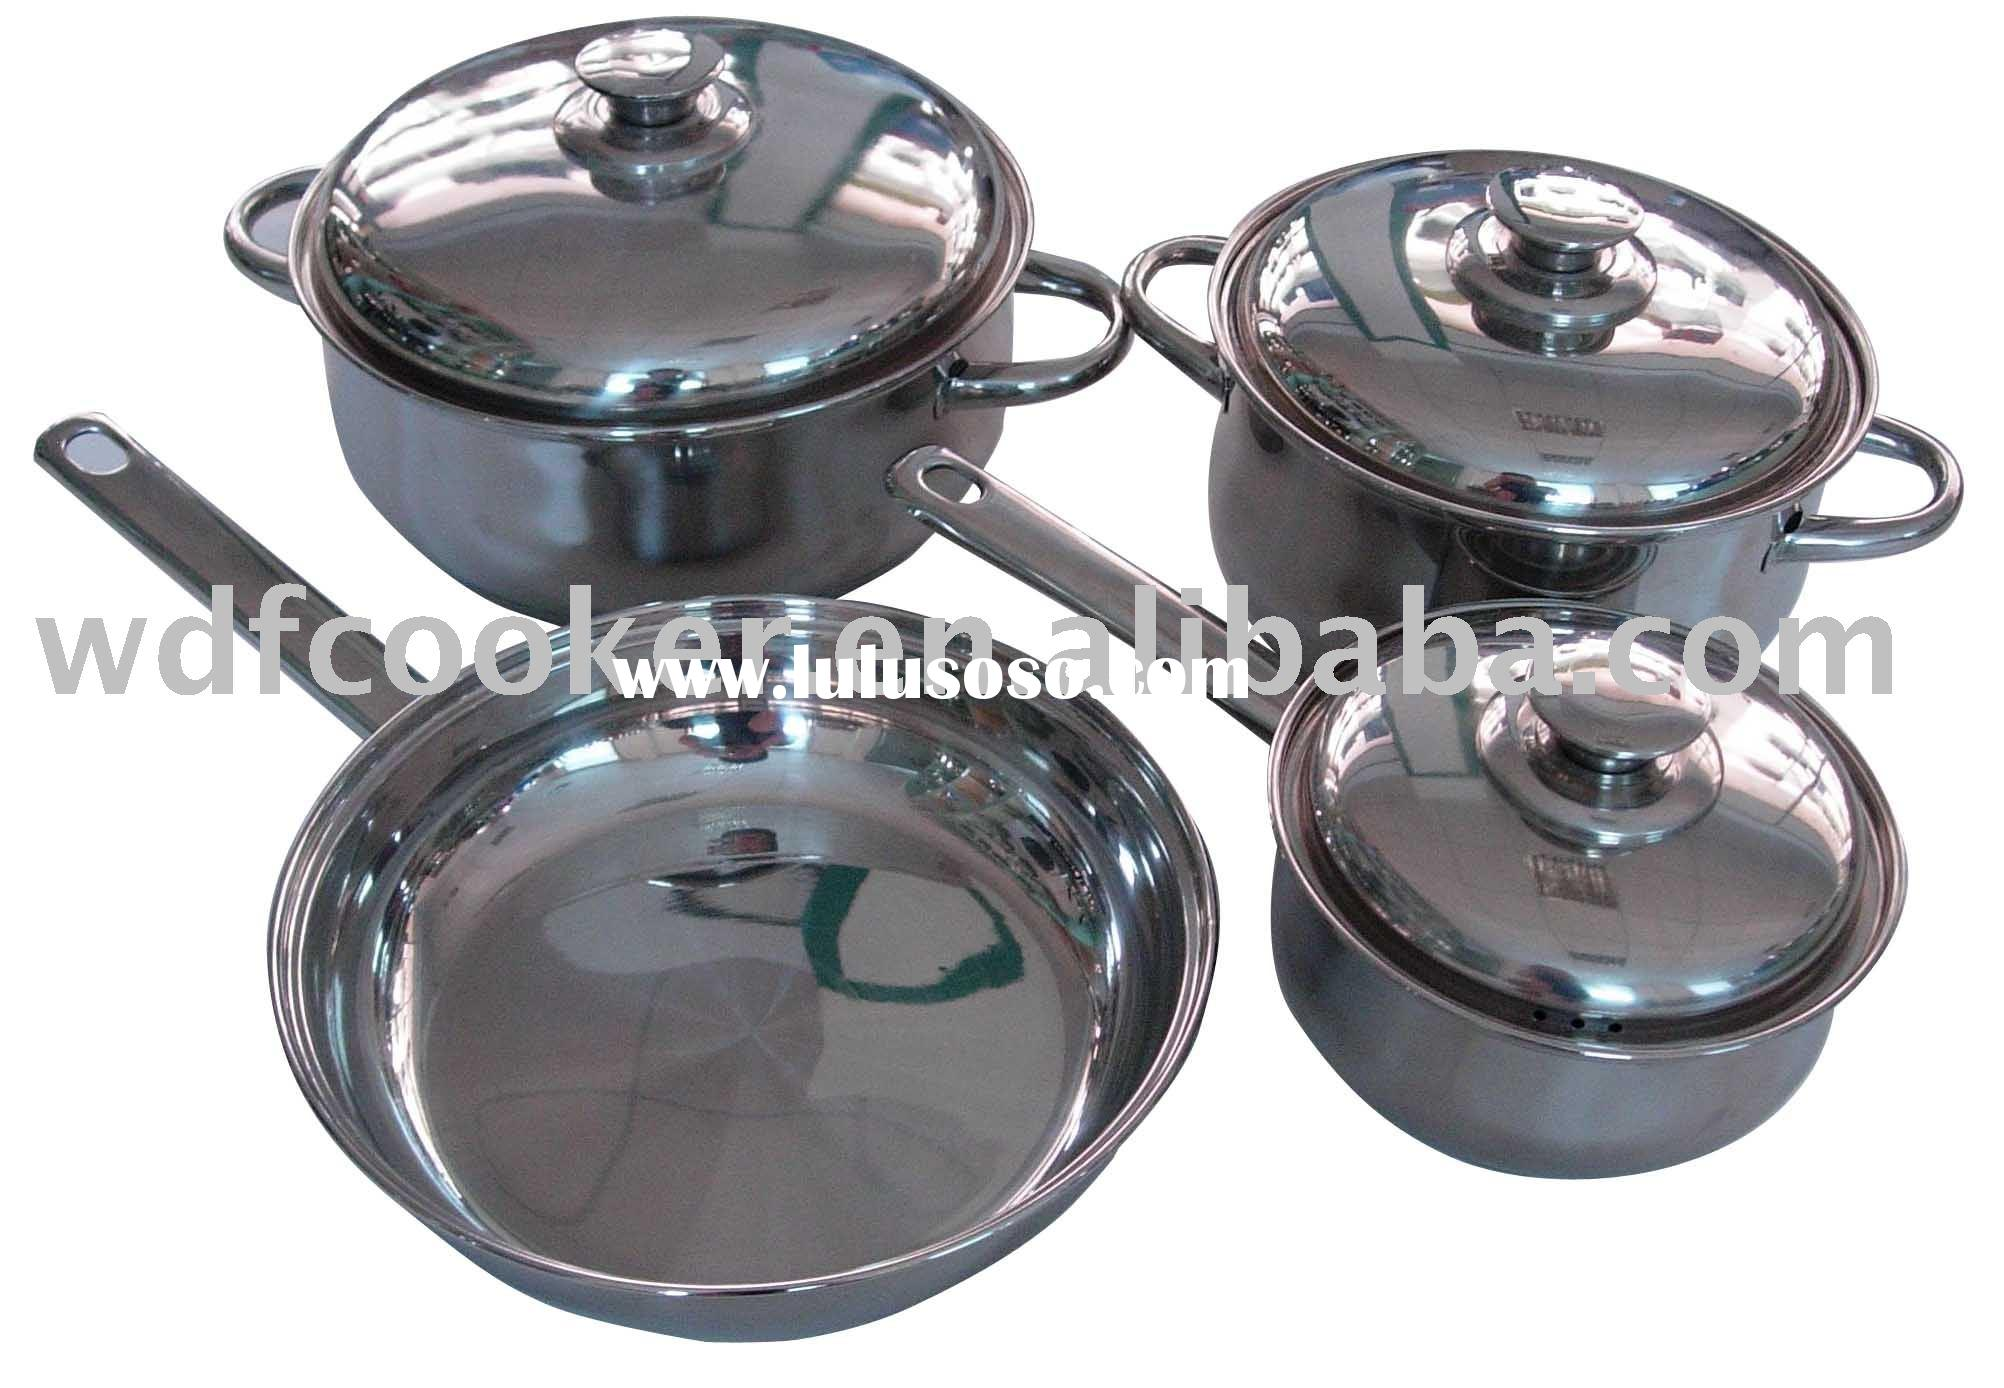 7 pcs stainless steel cookware